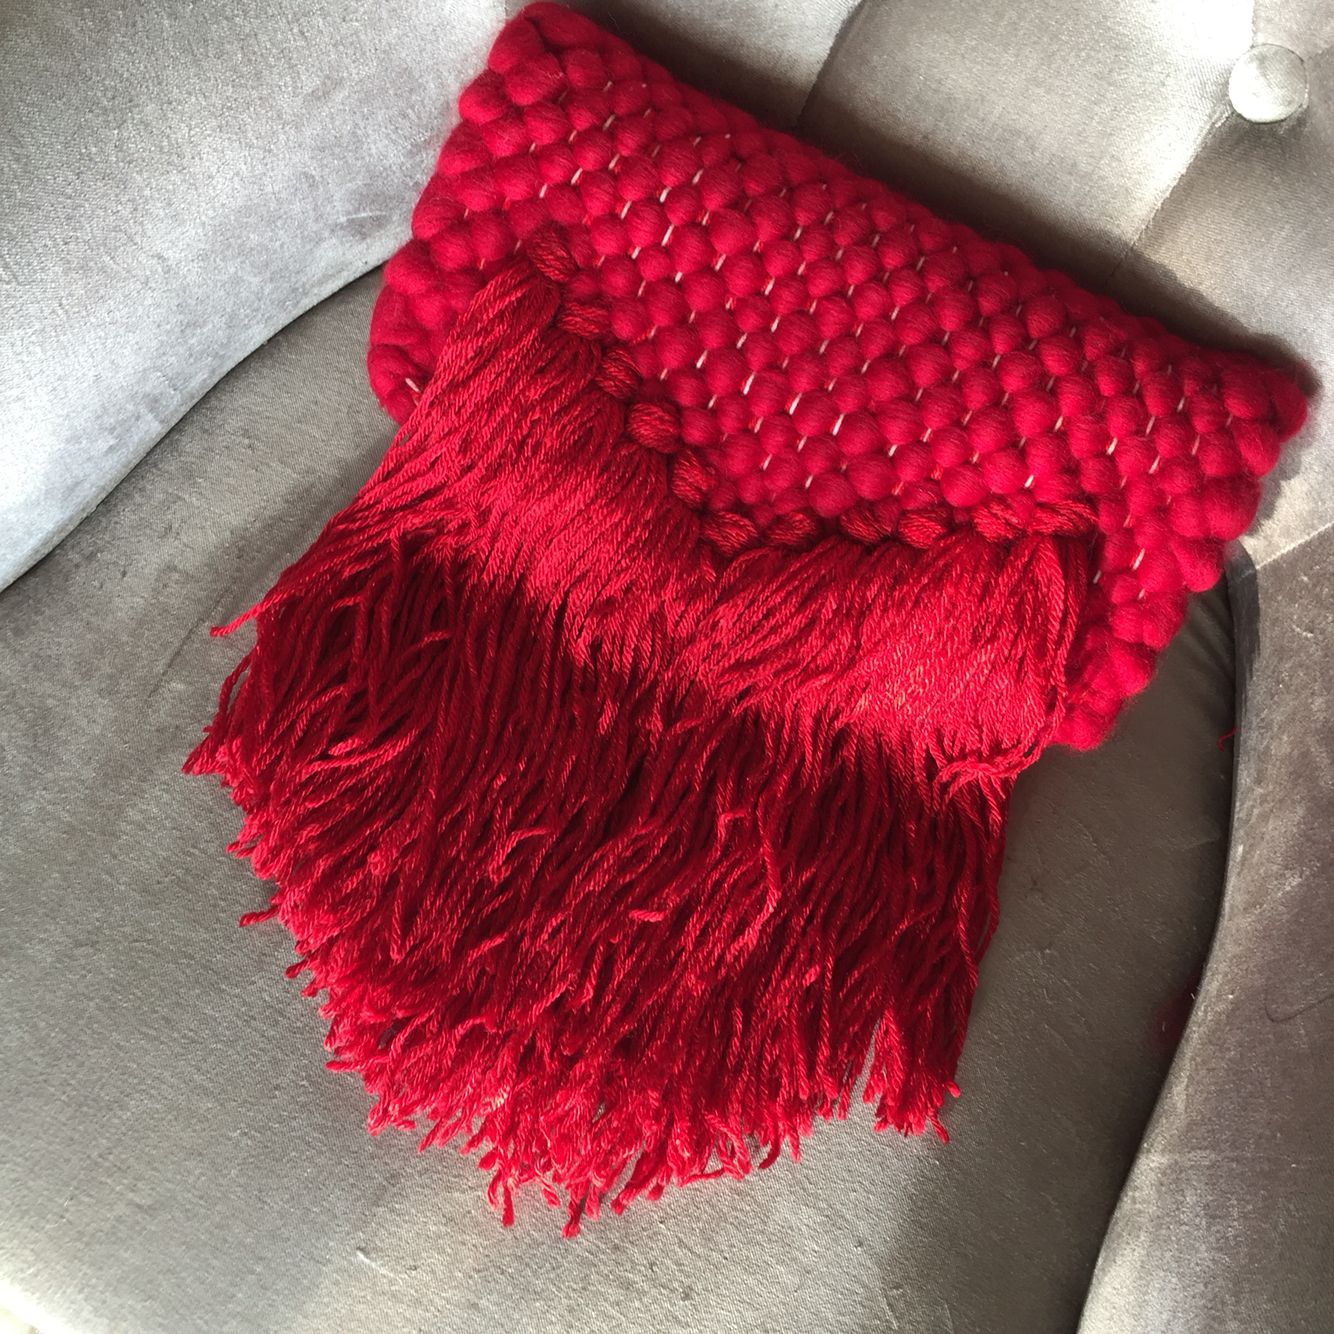 Woven red merino wool clutch with tassels